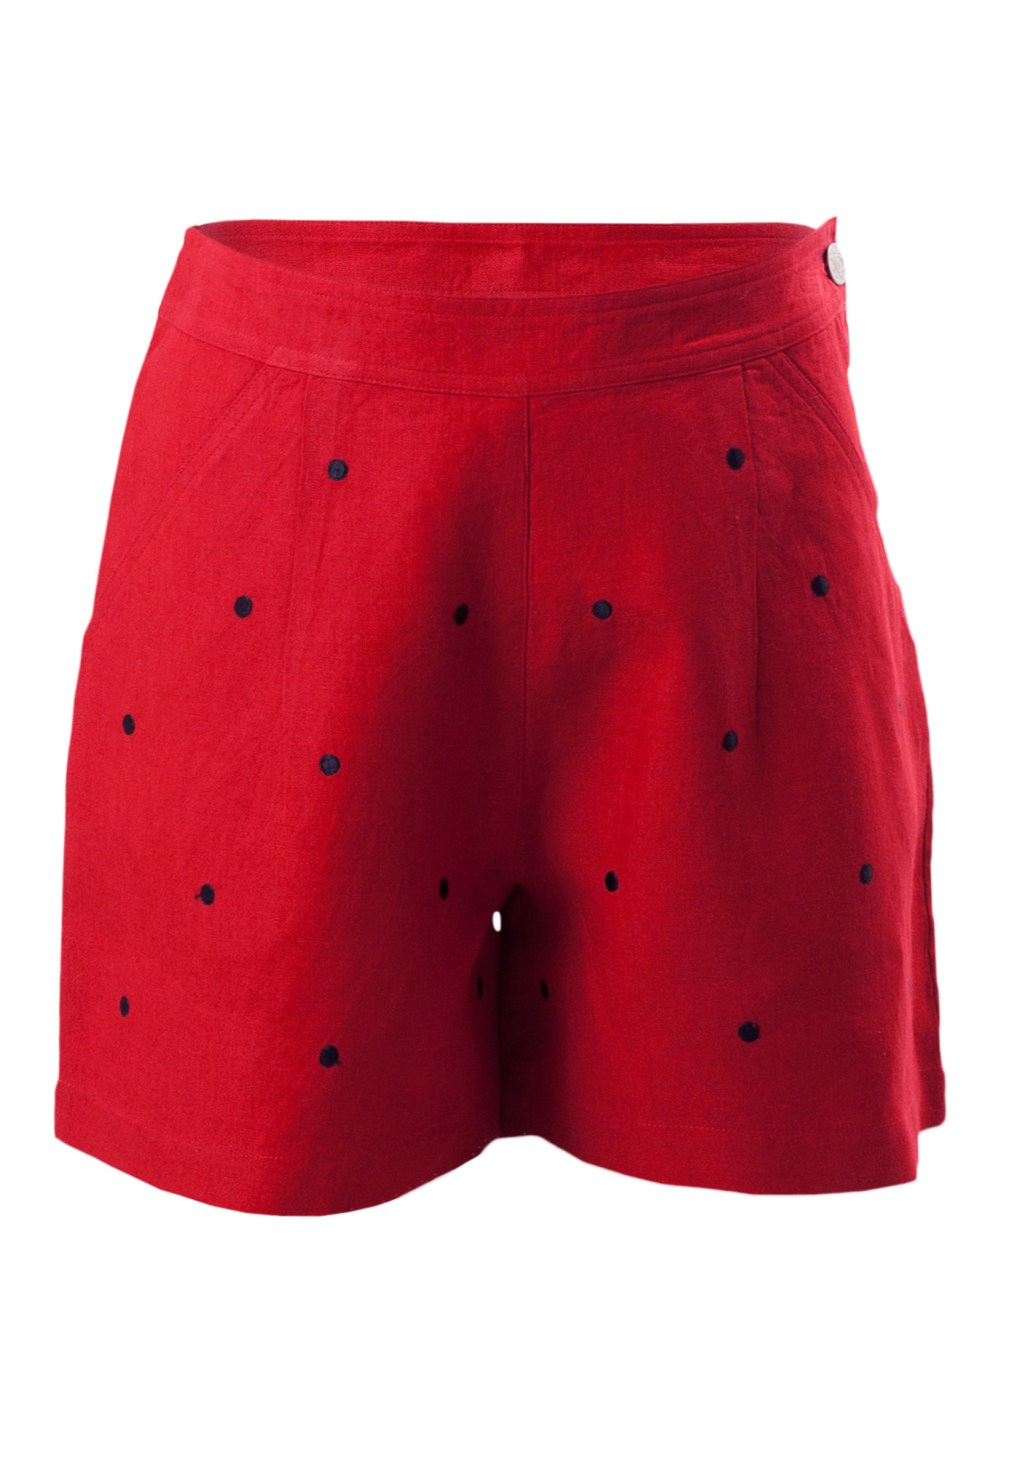 MINC Petite Strawberry Girls Embroidered Polka Dot Shorts in Red Linen